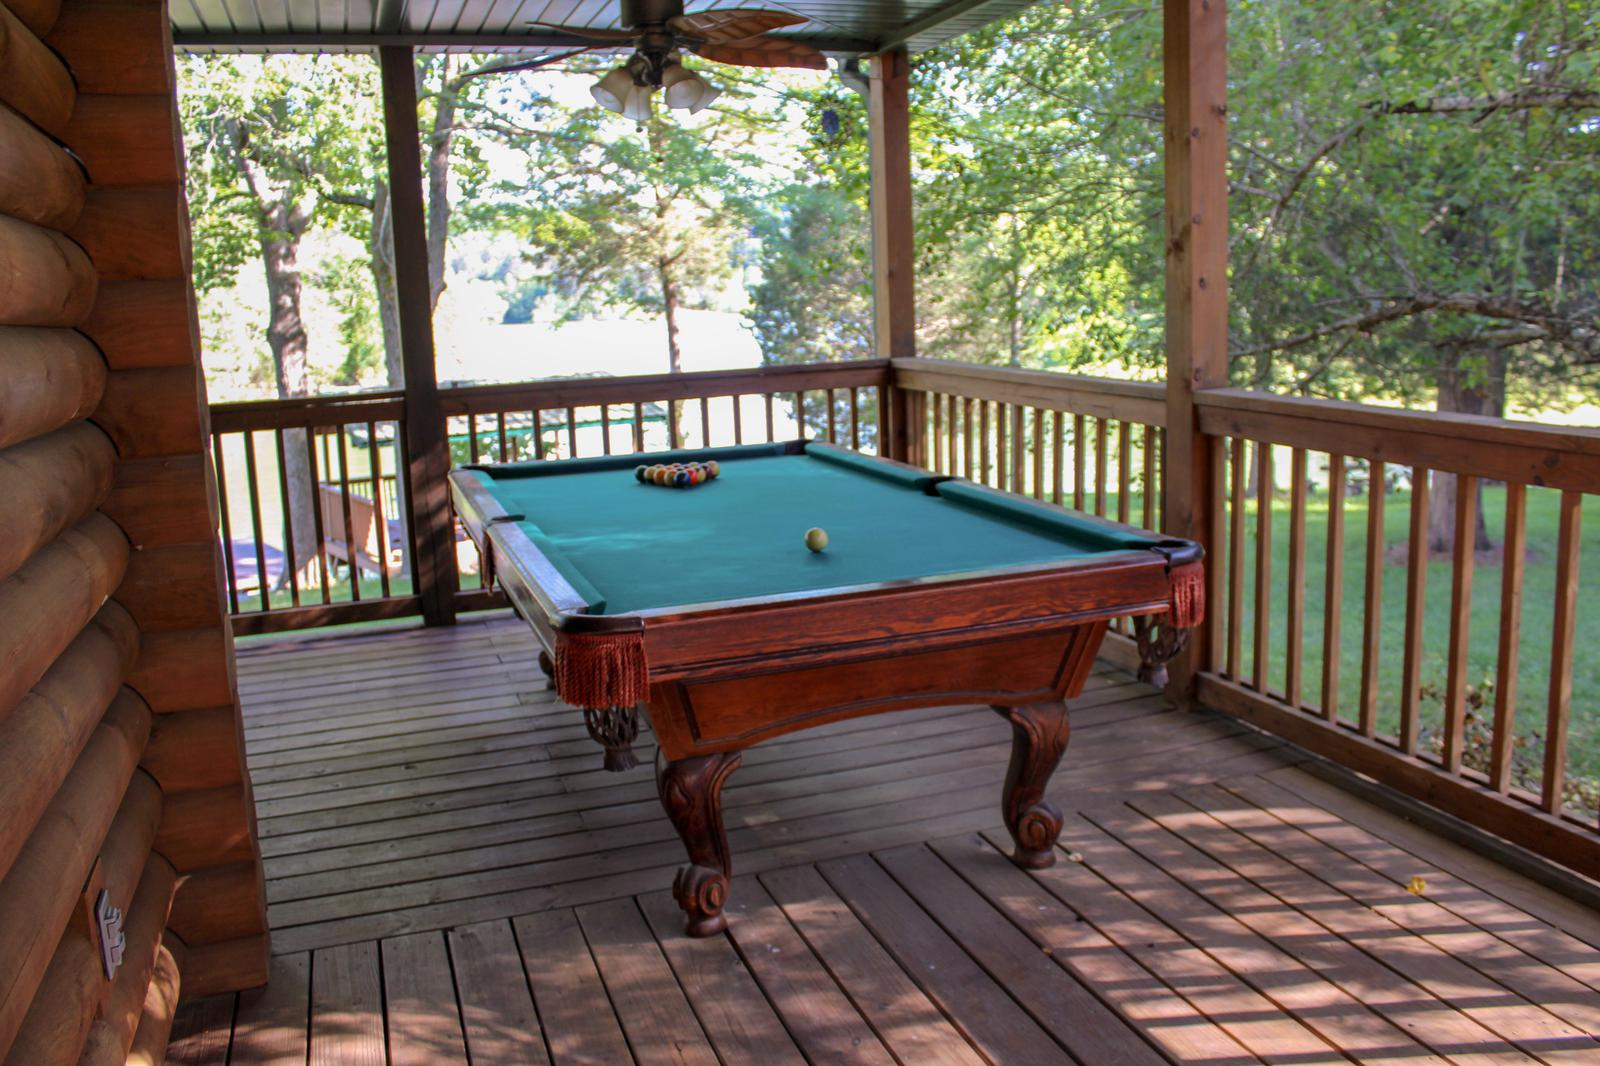 POOL TABLE OVER LOOKING THE LAKE